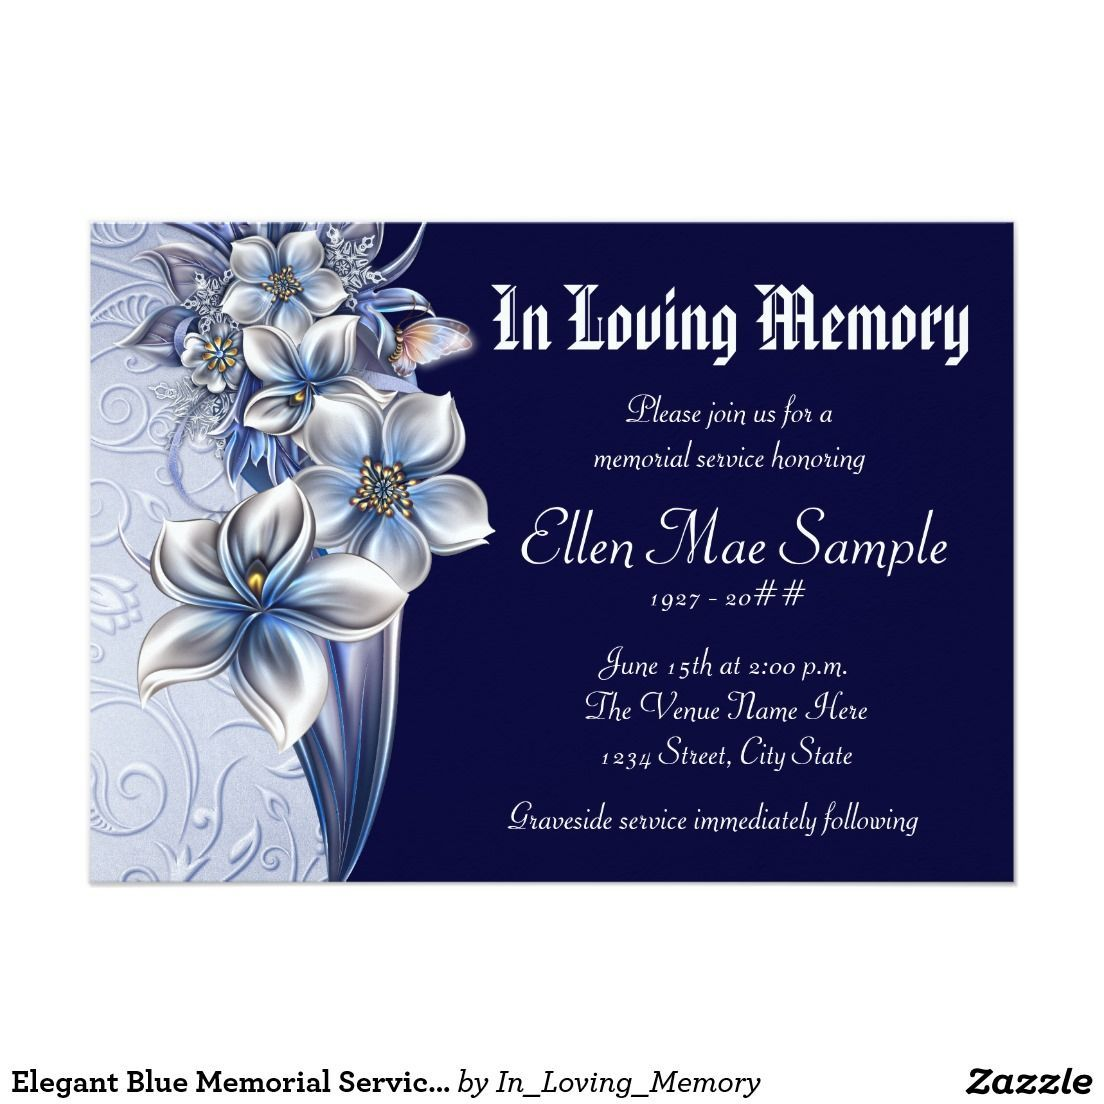 Elegant Blue Memorial Service Announcements Zazzle With Death Anniversary Cards Tem Memorial Service Invitation Funeral Invitation Memorial Cards For Funeral